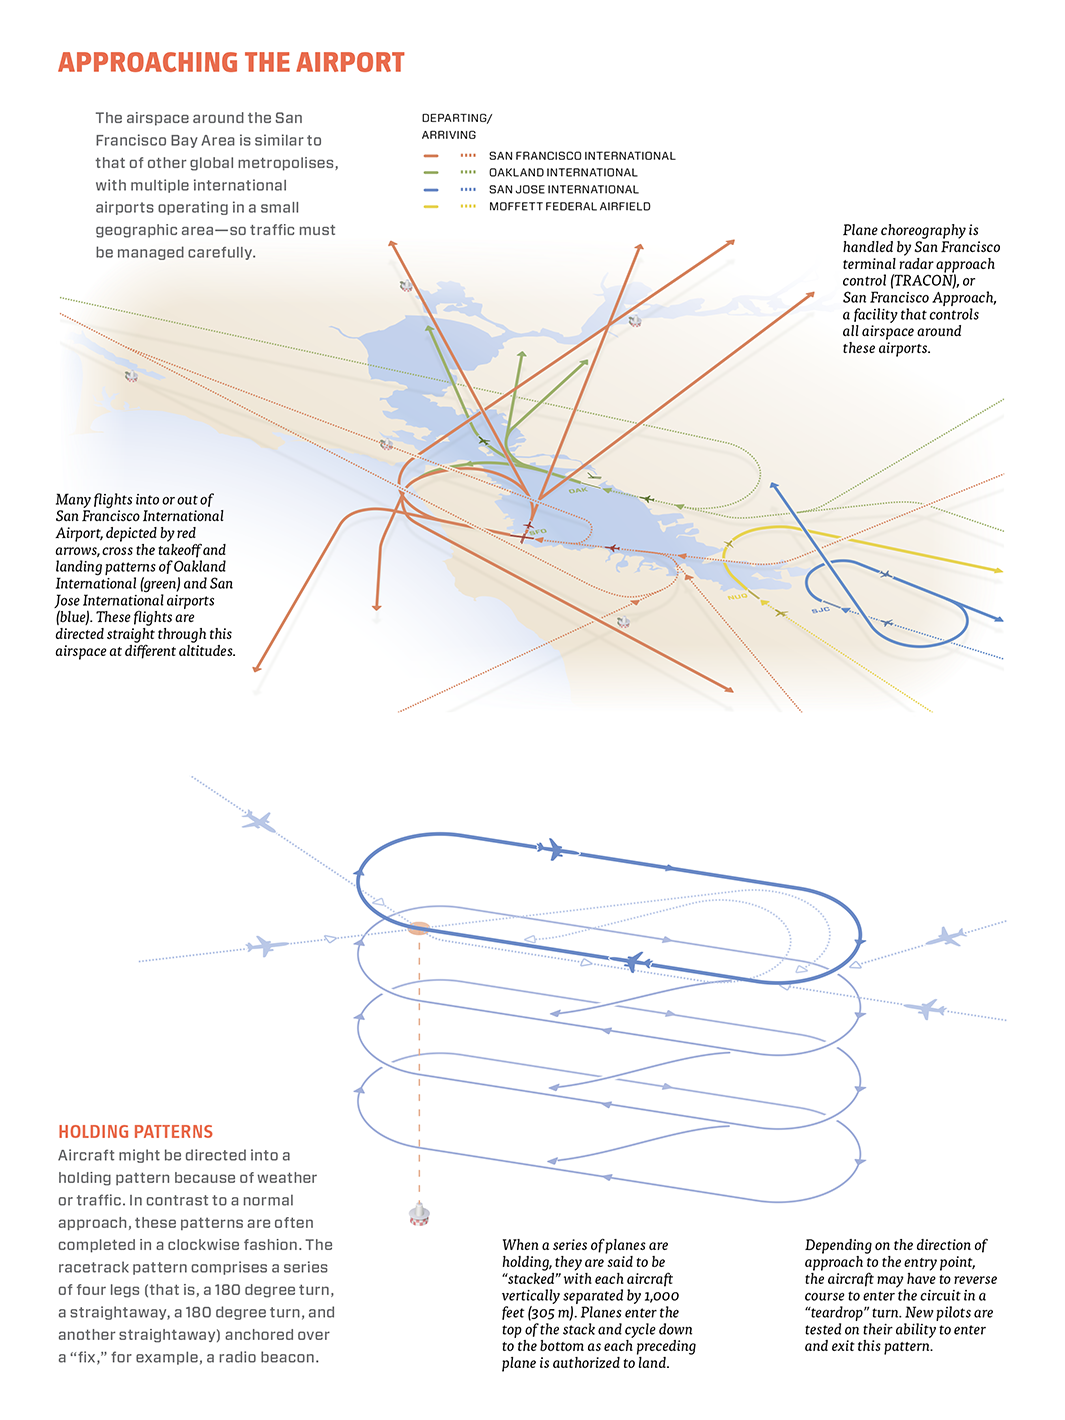 A Simple Visual Guide to How Planes Take Off, Navigate